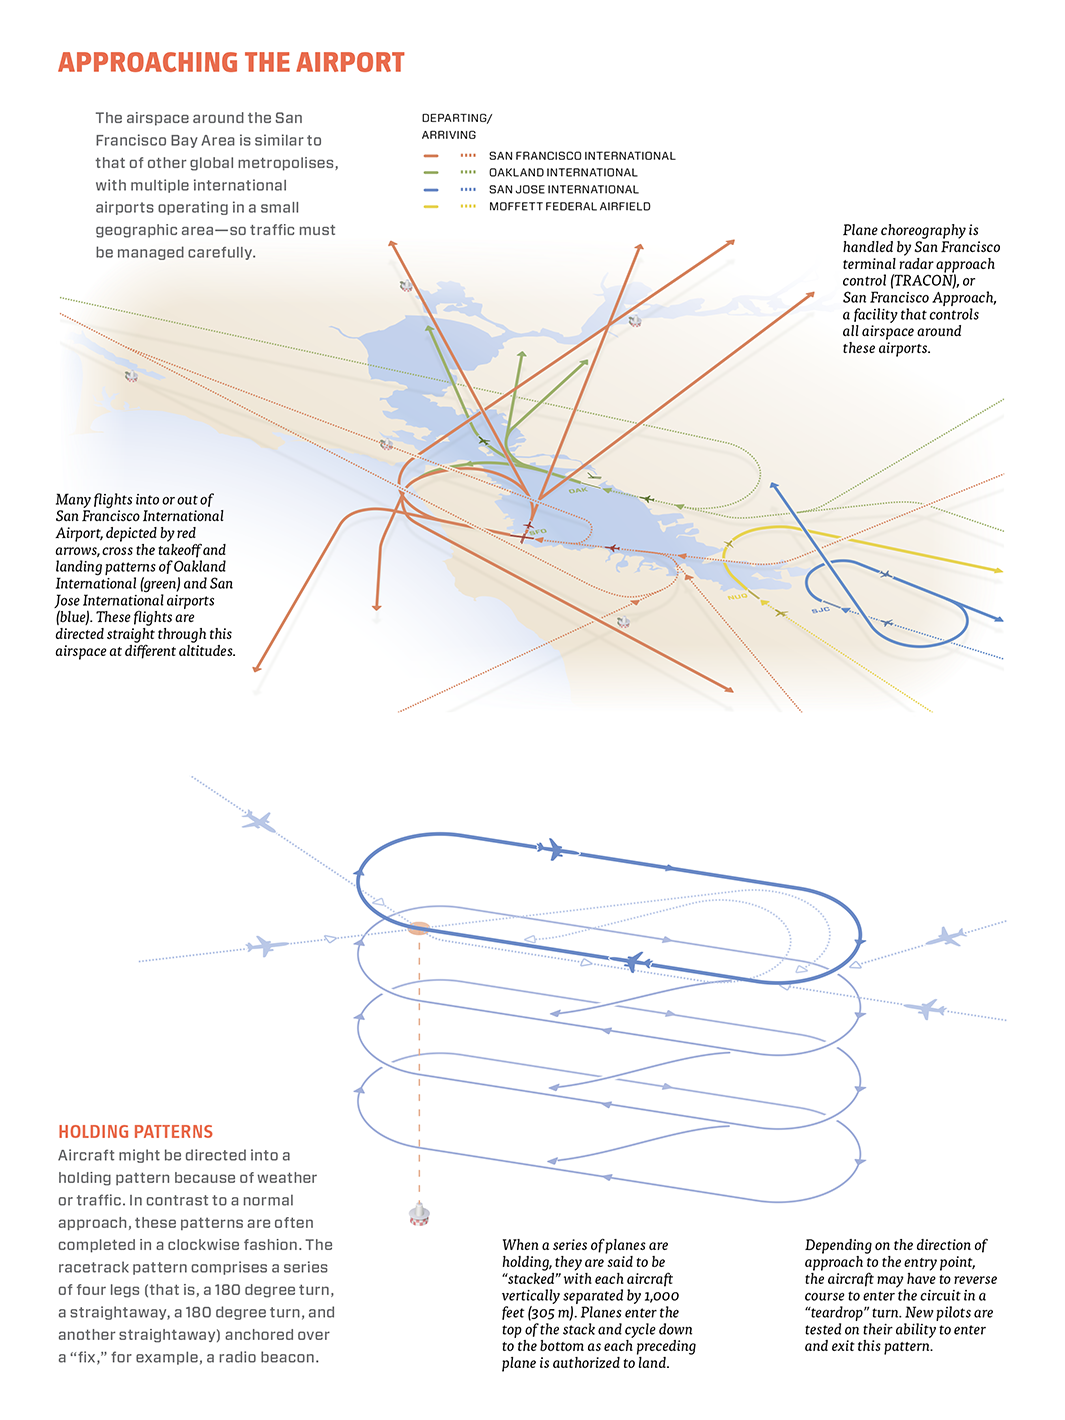 A Simple Visual Guide to How Planes Take Off, Navigate